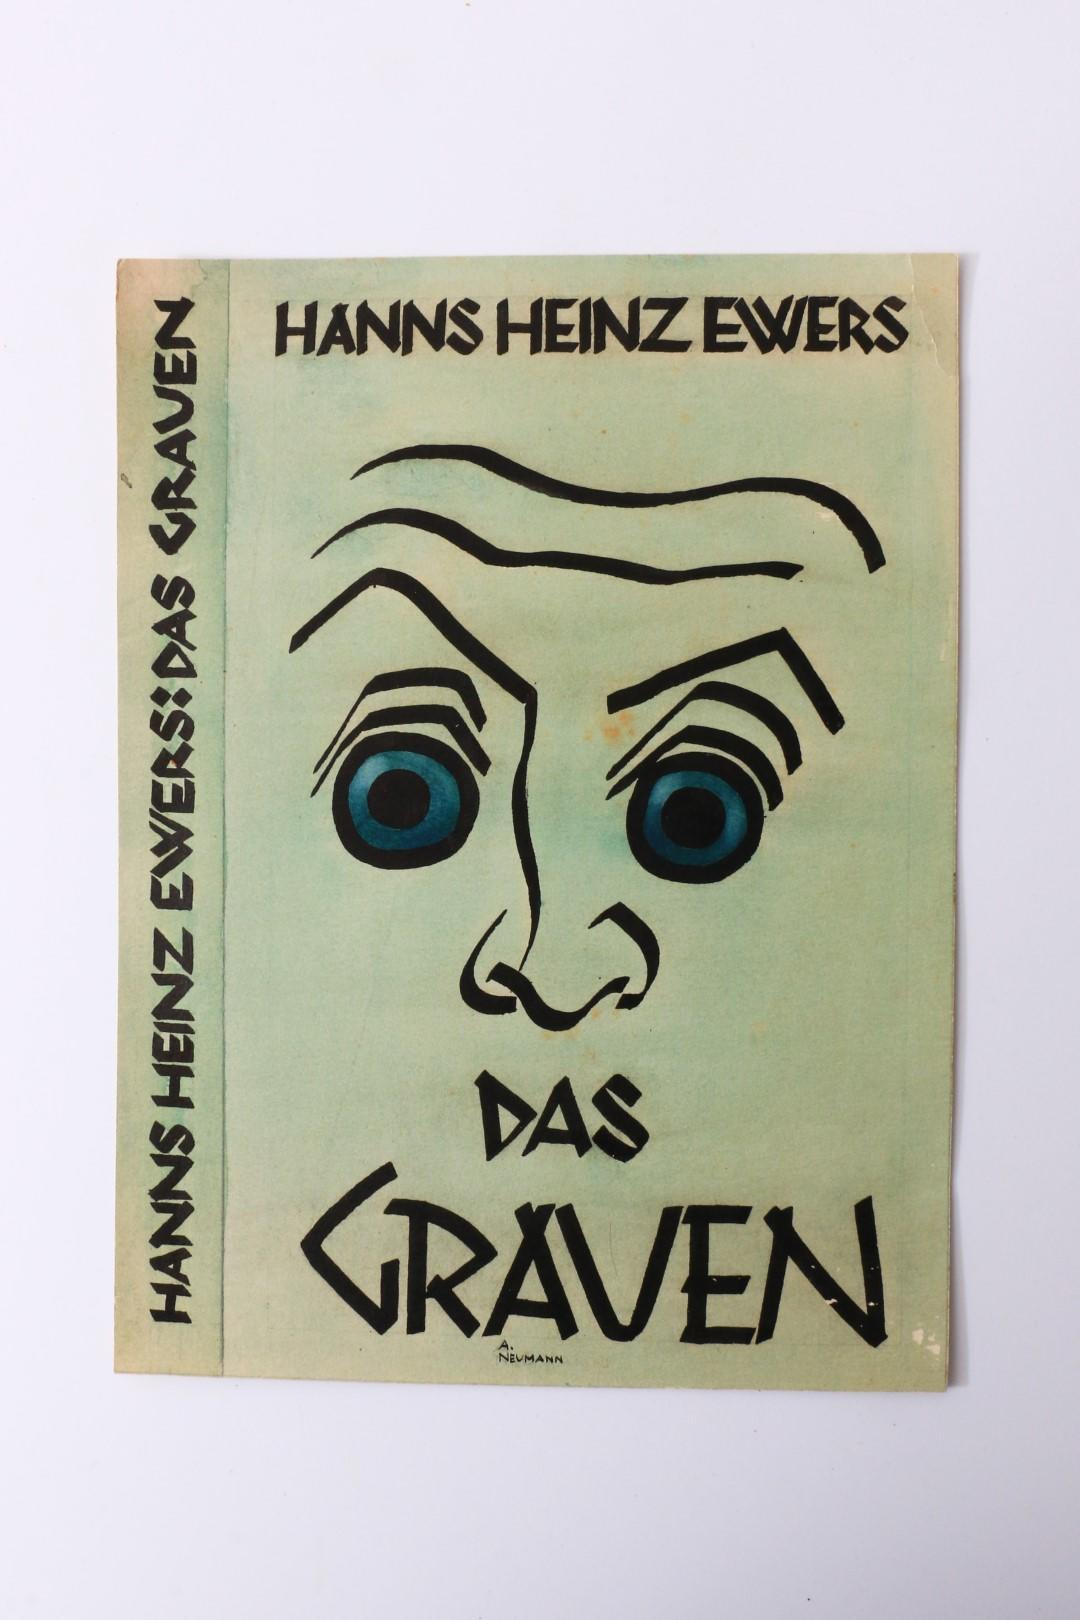 Hanns Heinz Ewers, A Neumann - Dust Jacket Art for Das Grauen - None, c1907?, Manuscript.